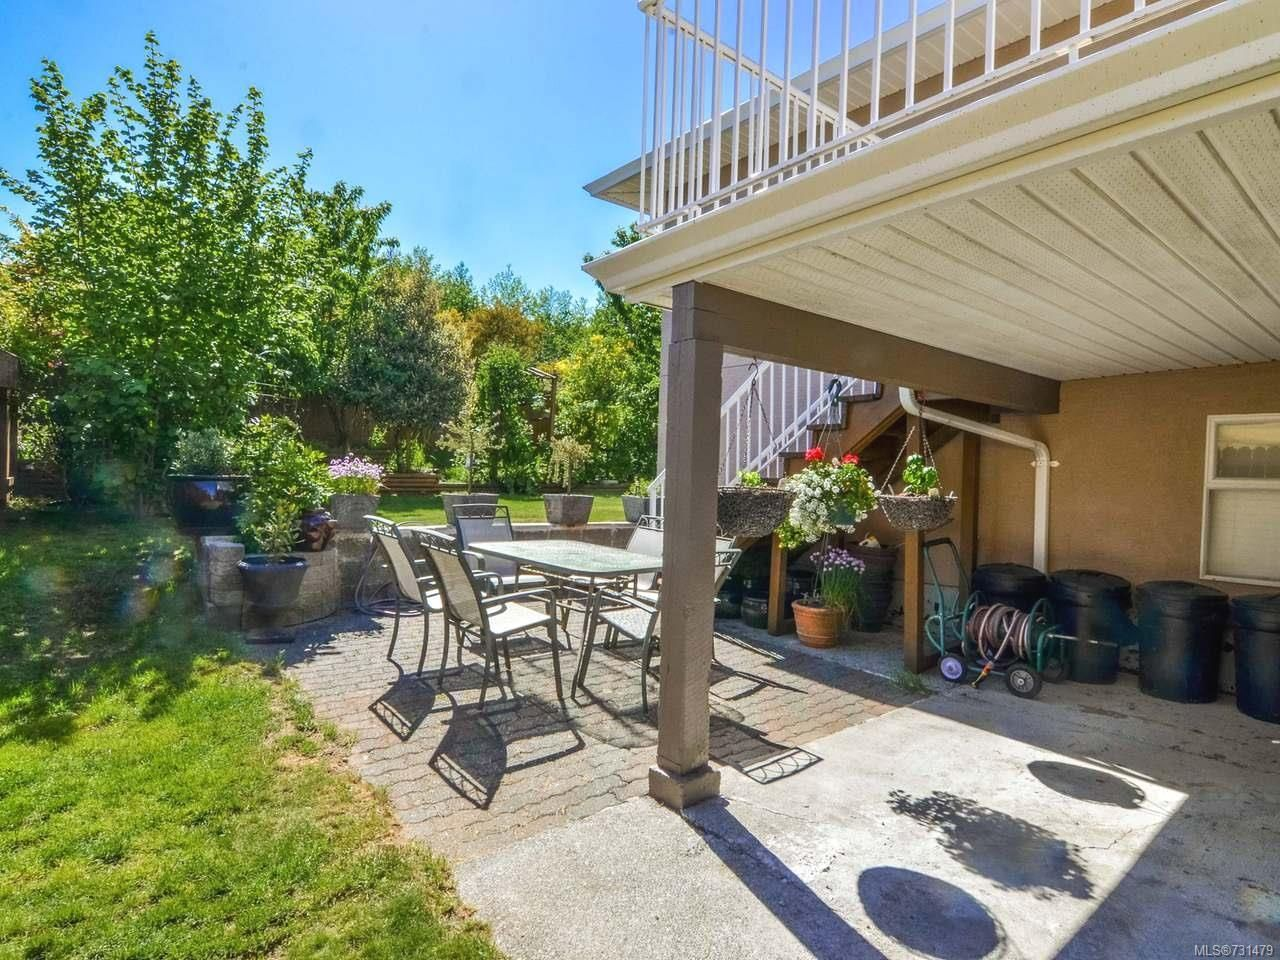 Photo 56: Photos: 753 Bowen Dr in CAMPBELL RIVER: CR Willow Point House for sale (Campbell River)  : MLS®# 731479